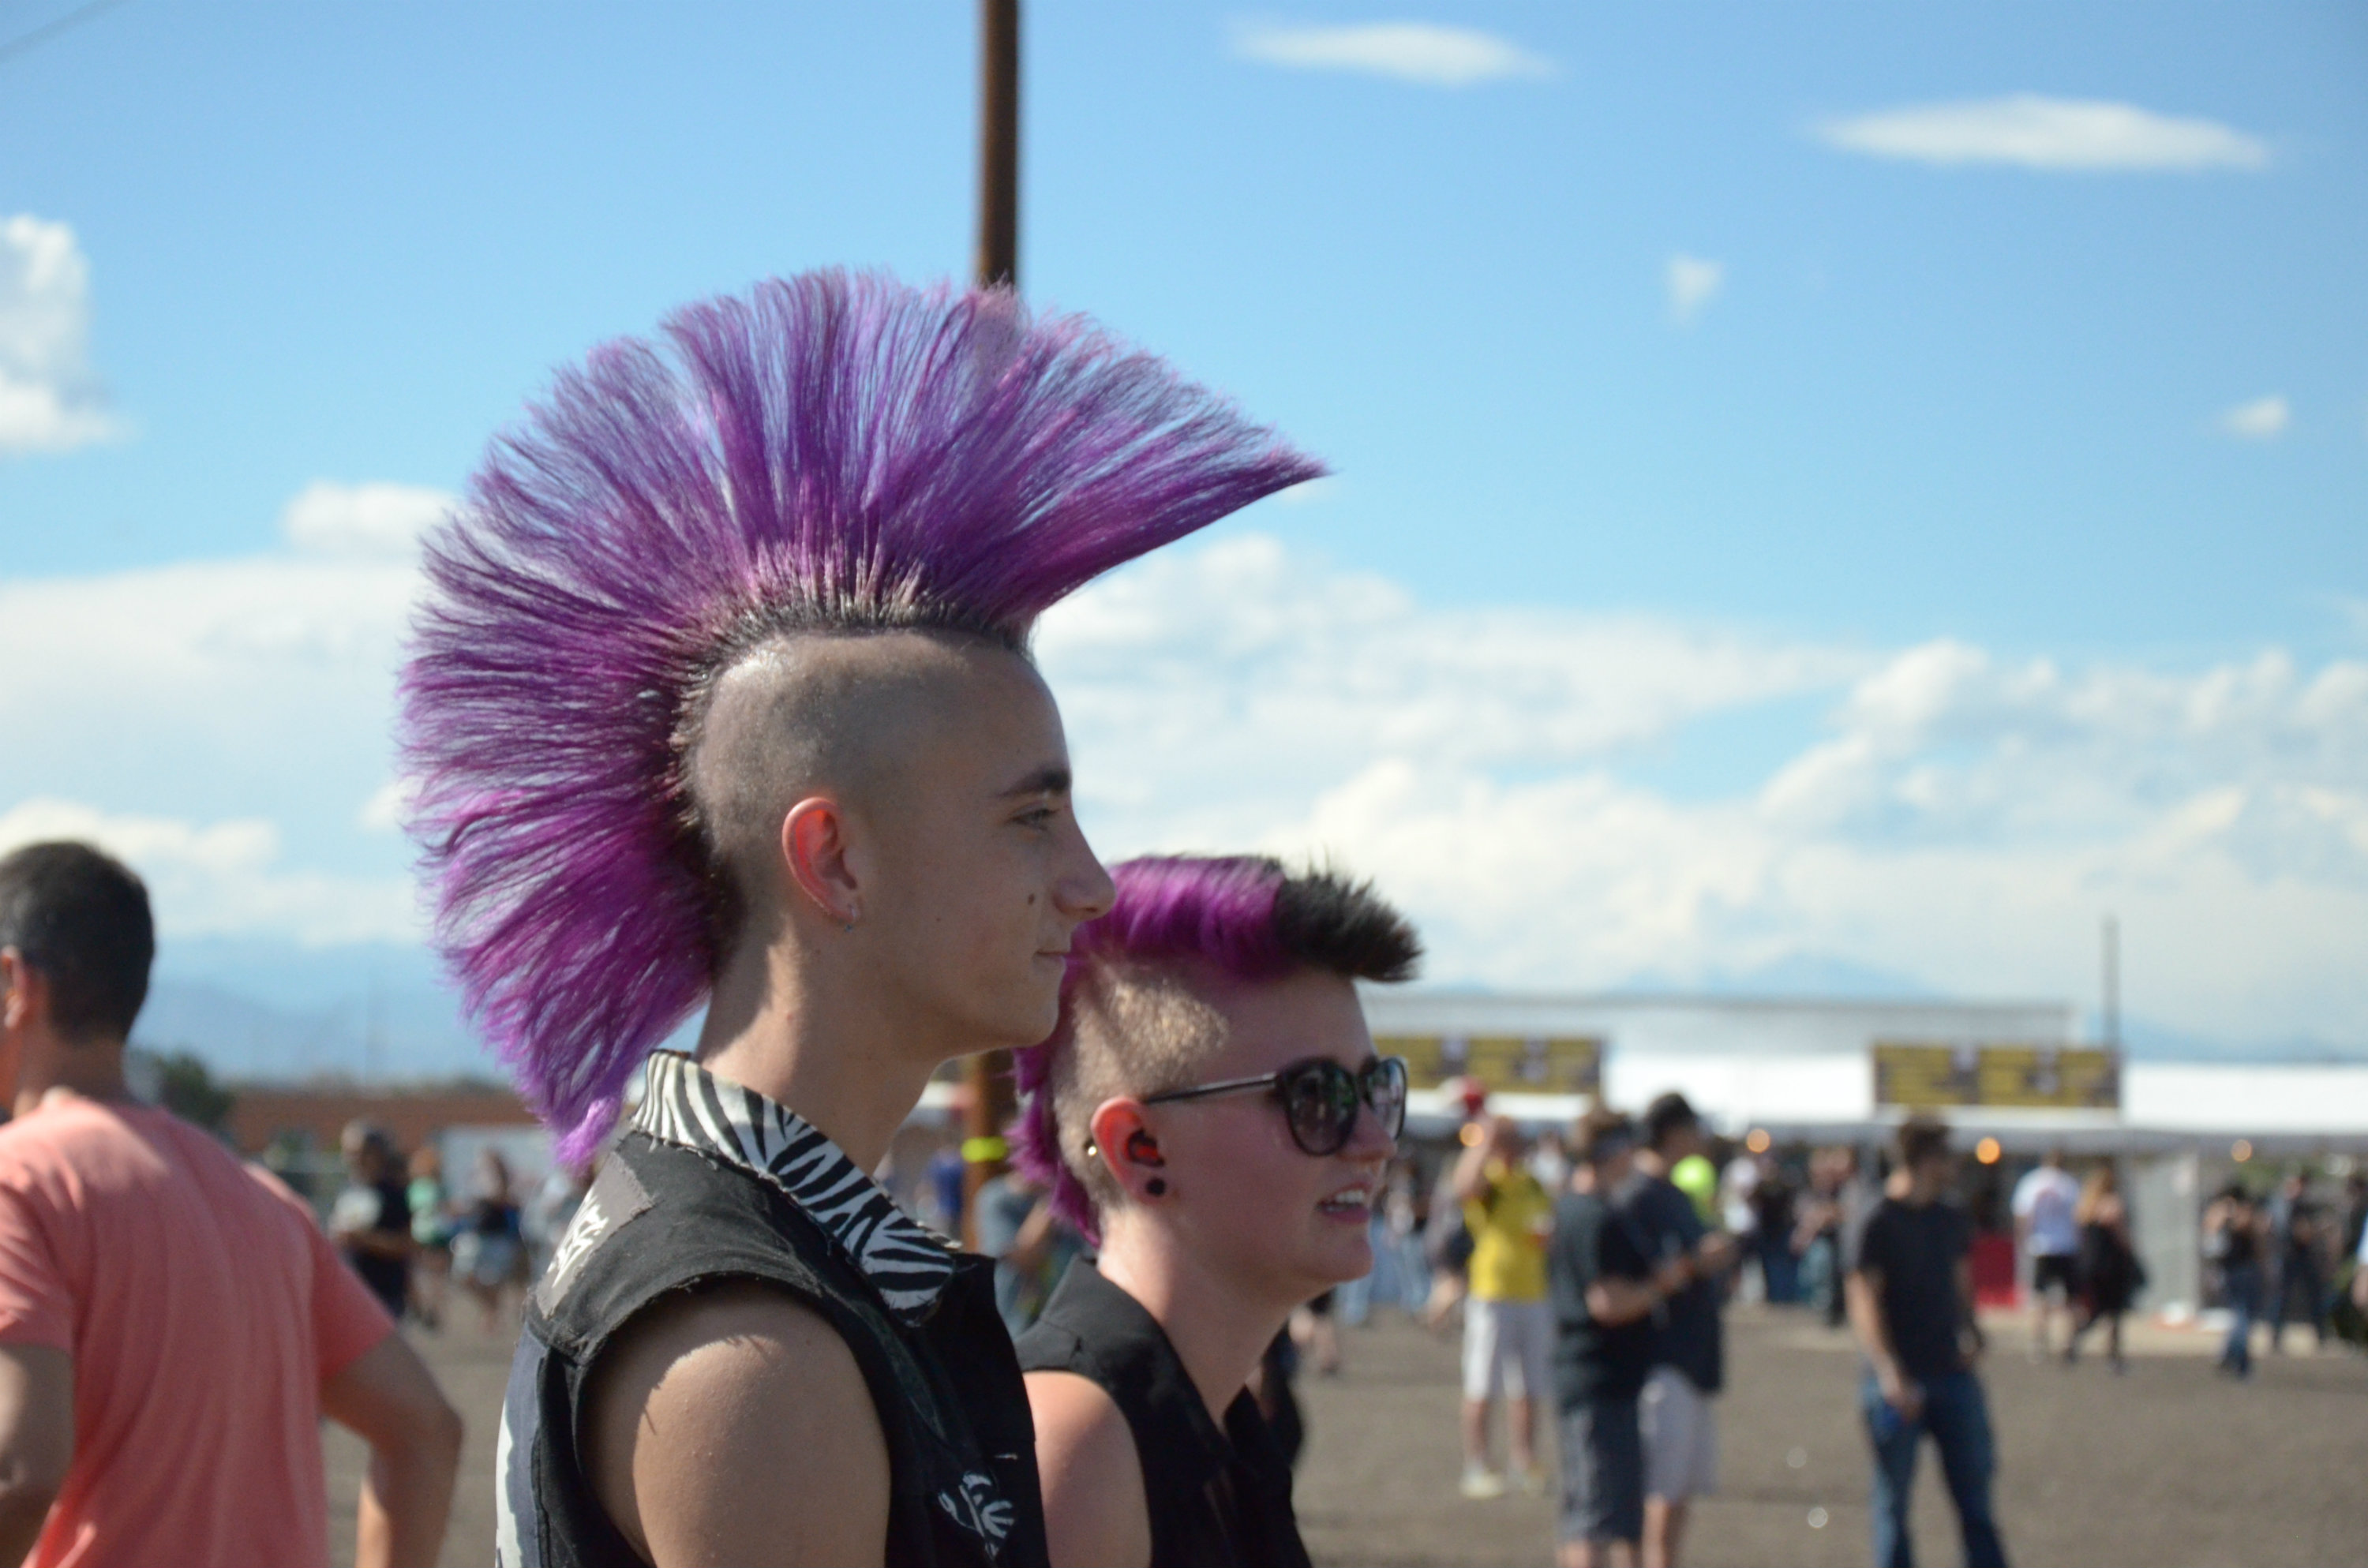 Photo: Crowd mohawks at Riot Fest 2016